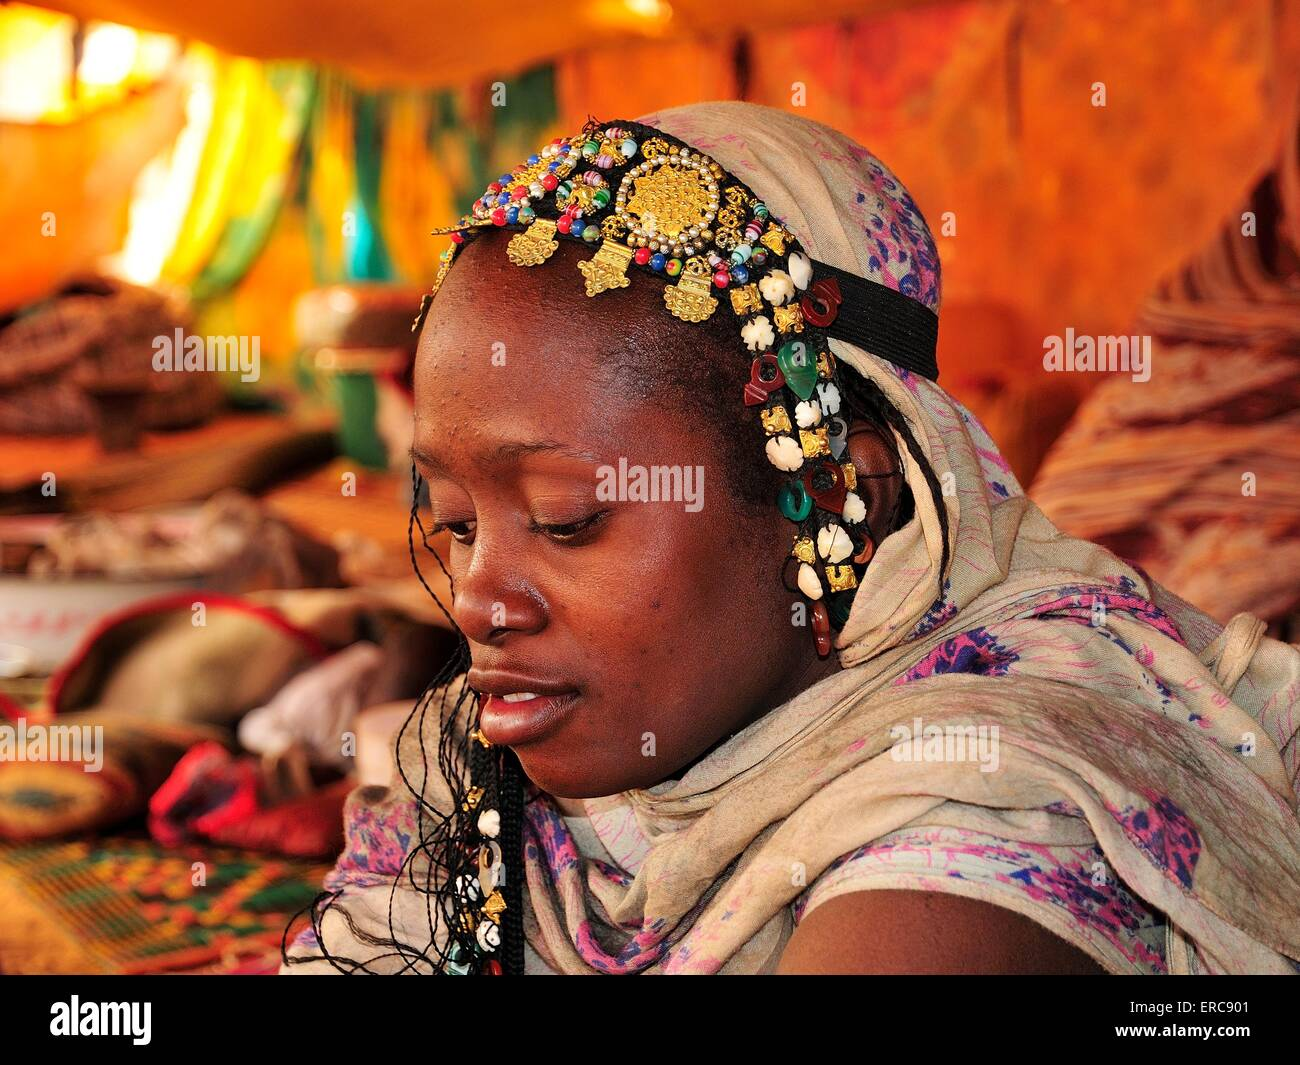 Woman with headdress in a tent, Chinguetti, Adrar Region, Mauritania - Stock Image